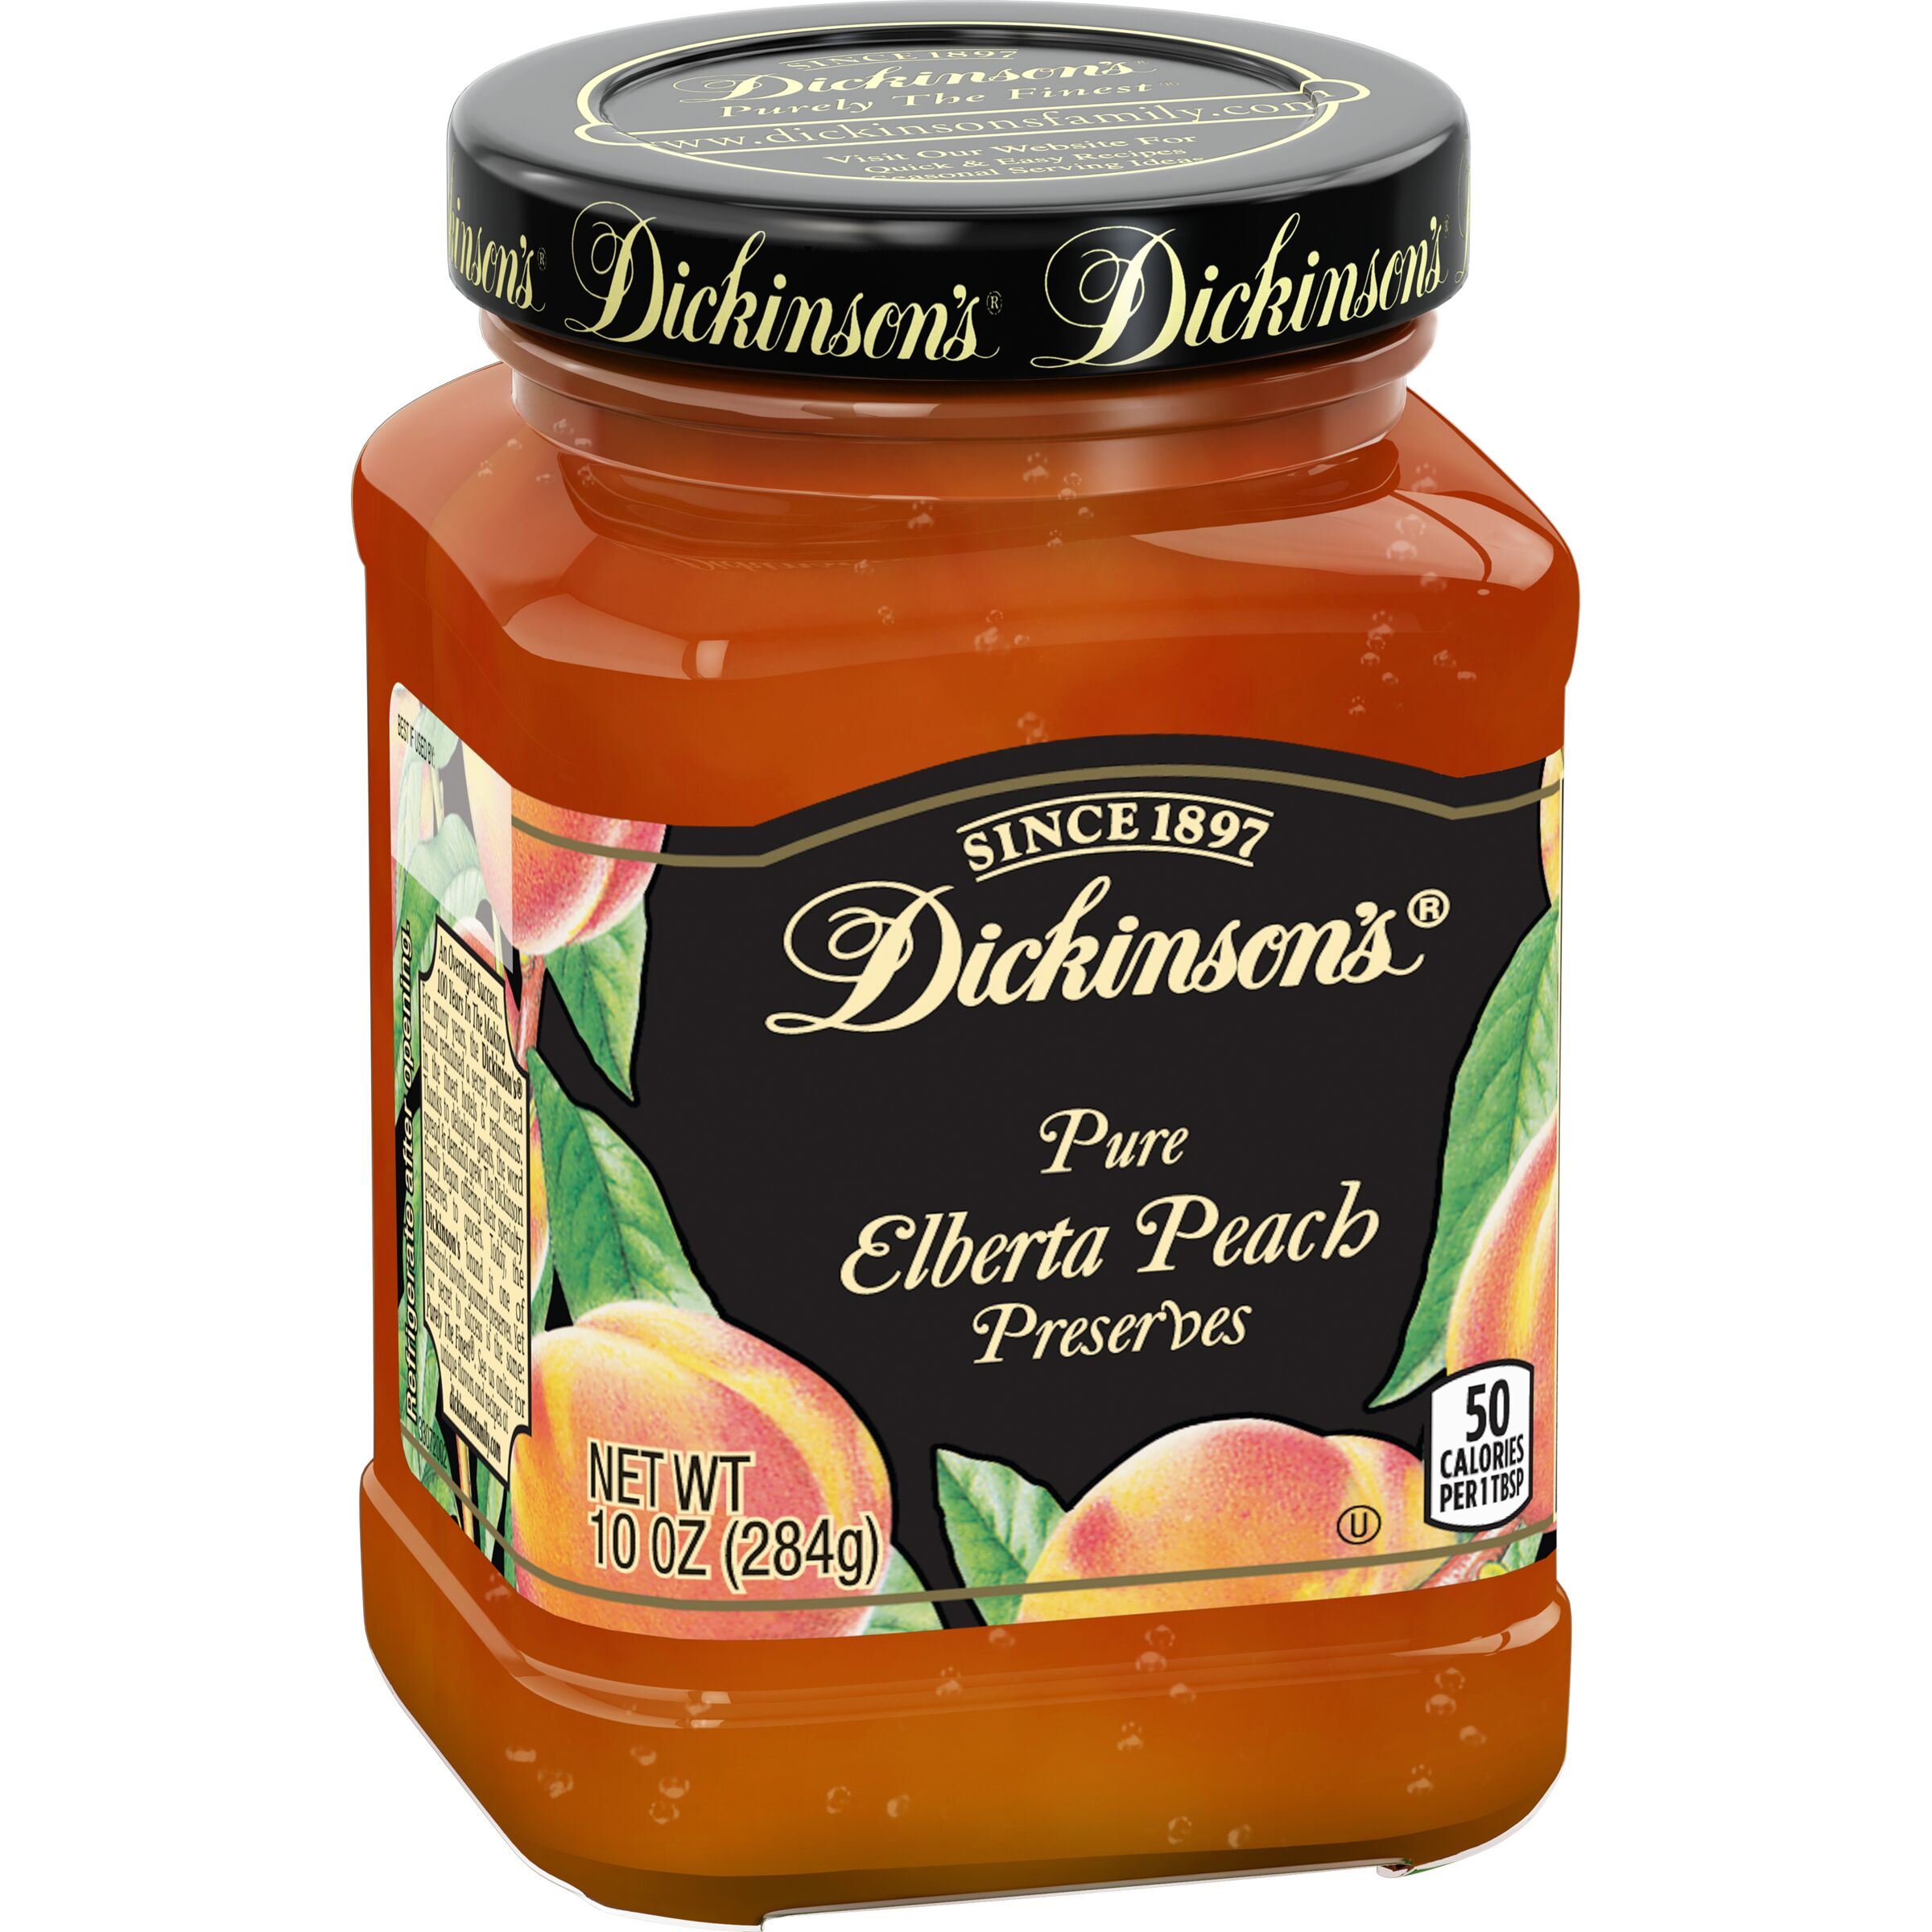 Dickinson's  Elberta Peach Preserves